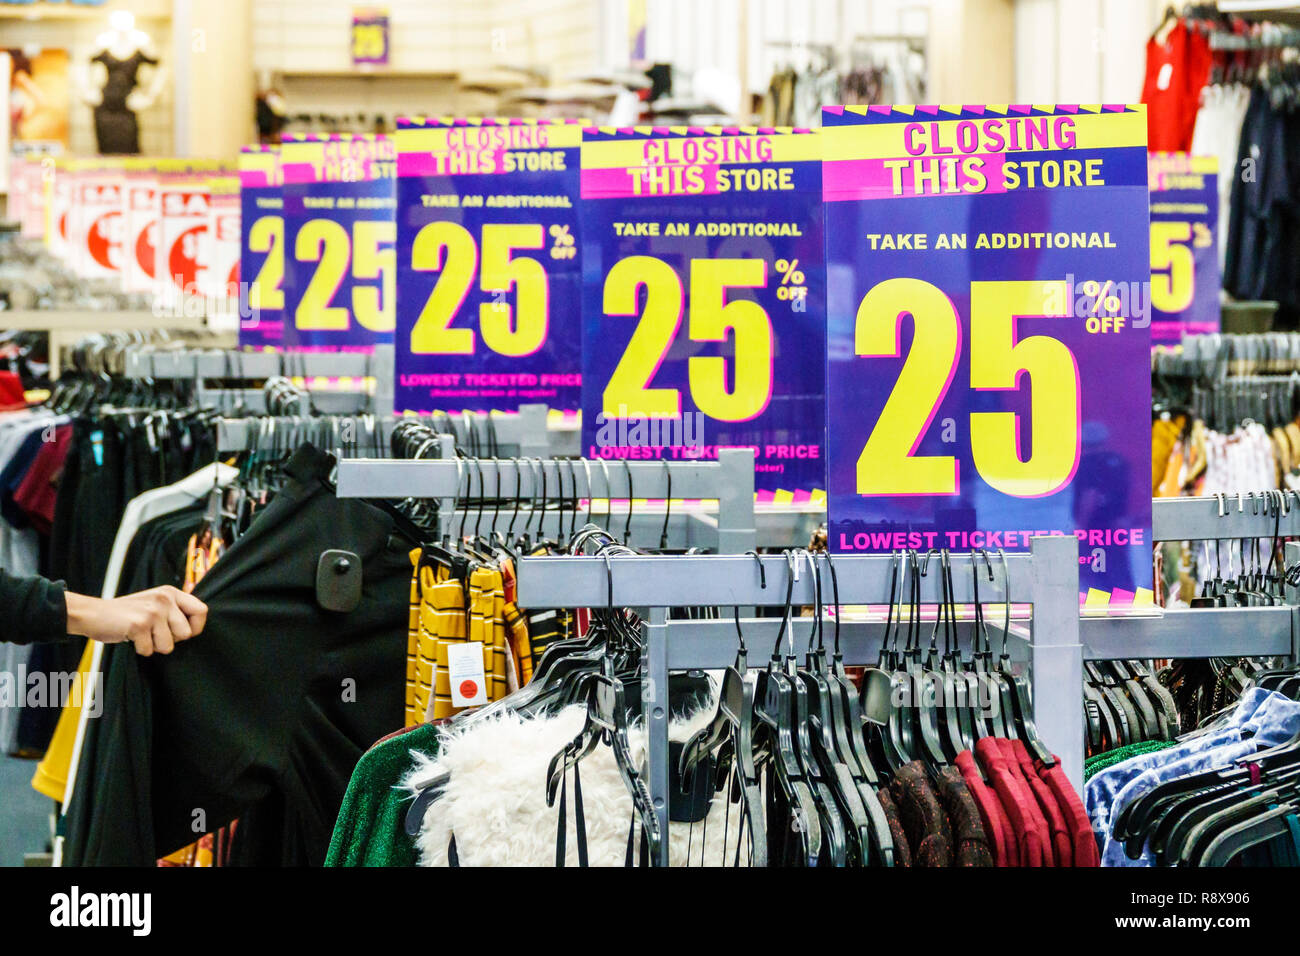 Miami Florida downtown clothing store closing sale 25% off - Stock Image